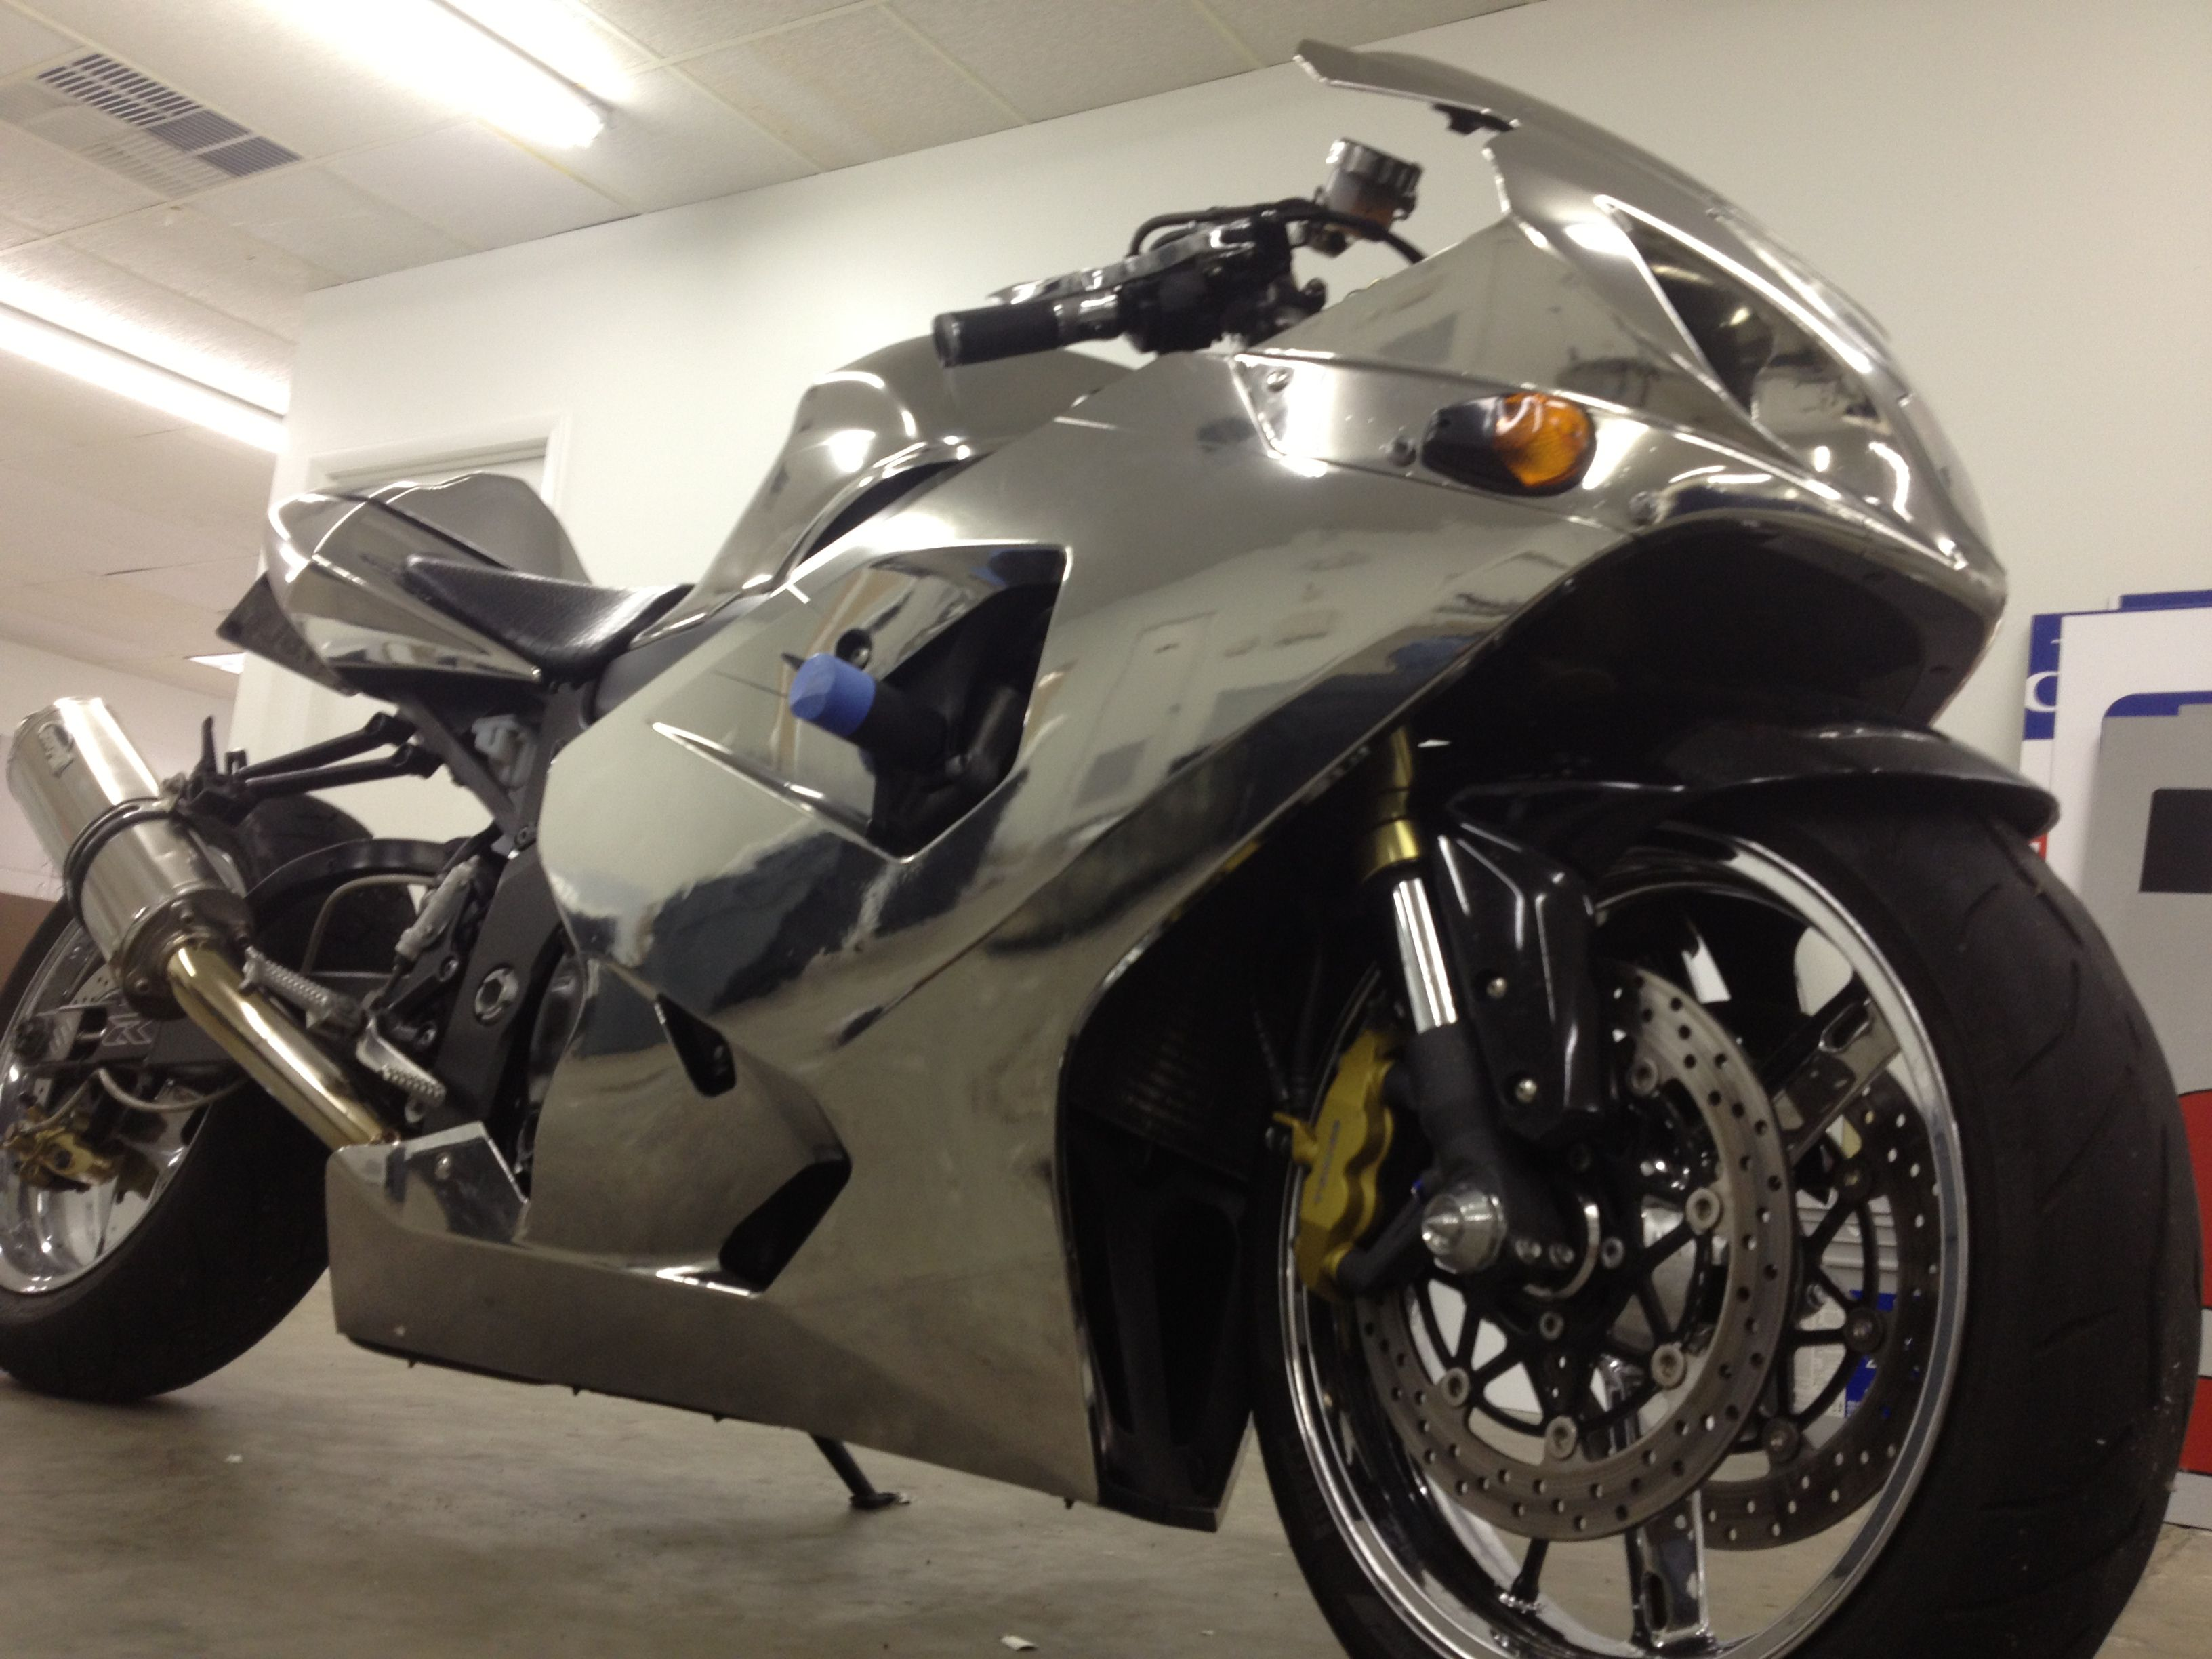 Chrome Vinyl Wrap On Street Bike Rad Pinterest Street Bikes - Vinyl wrap for motorcycle helmets